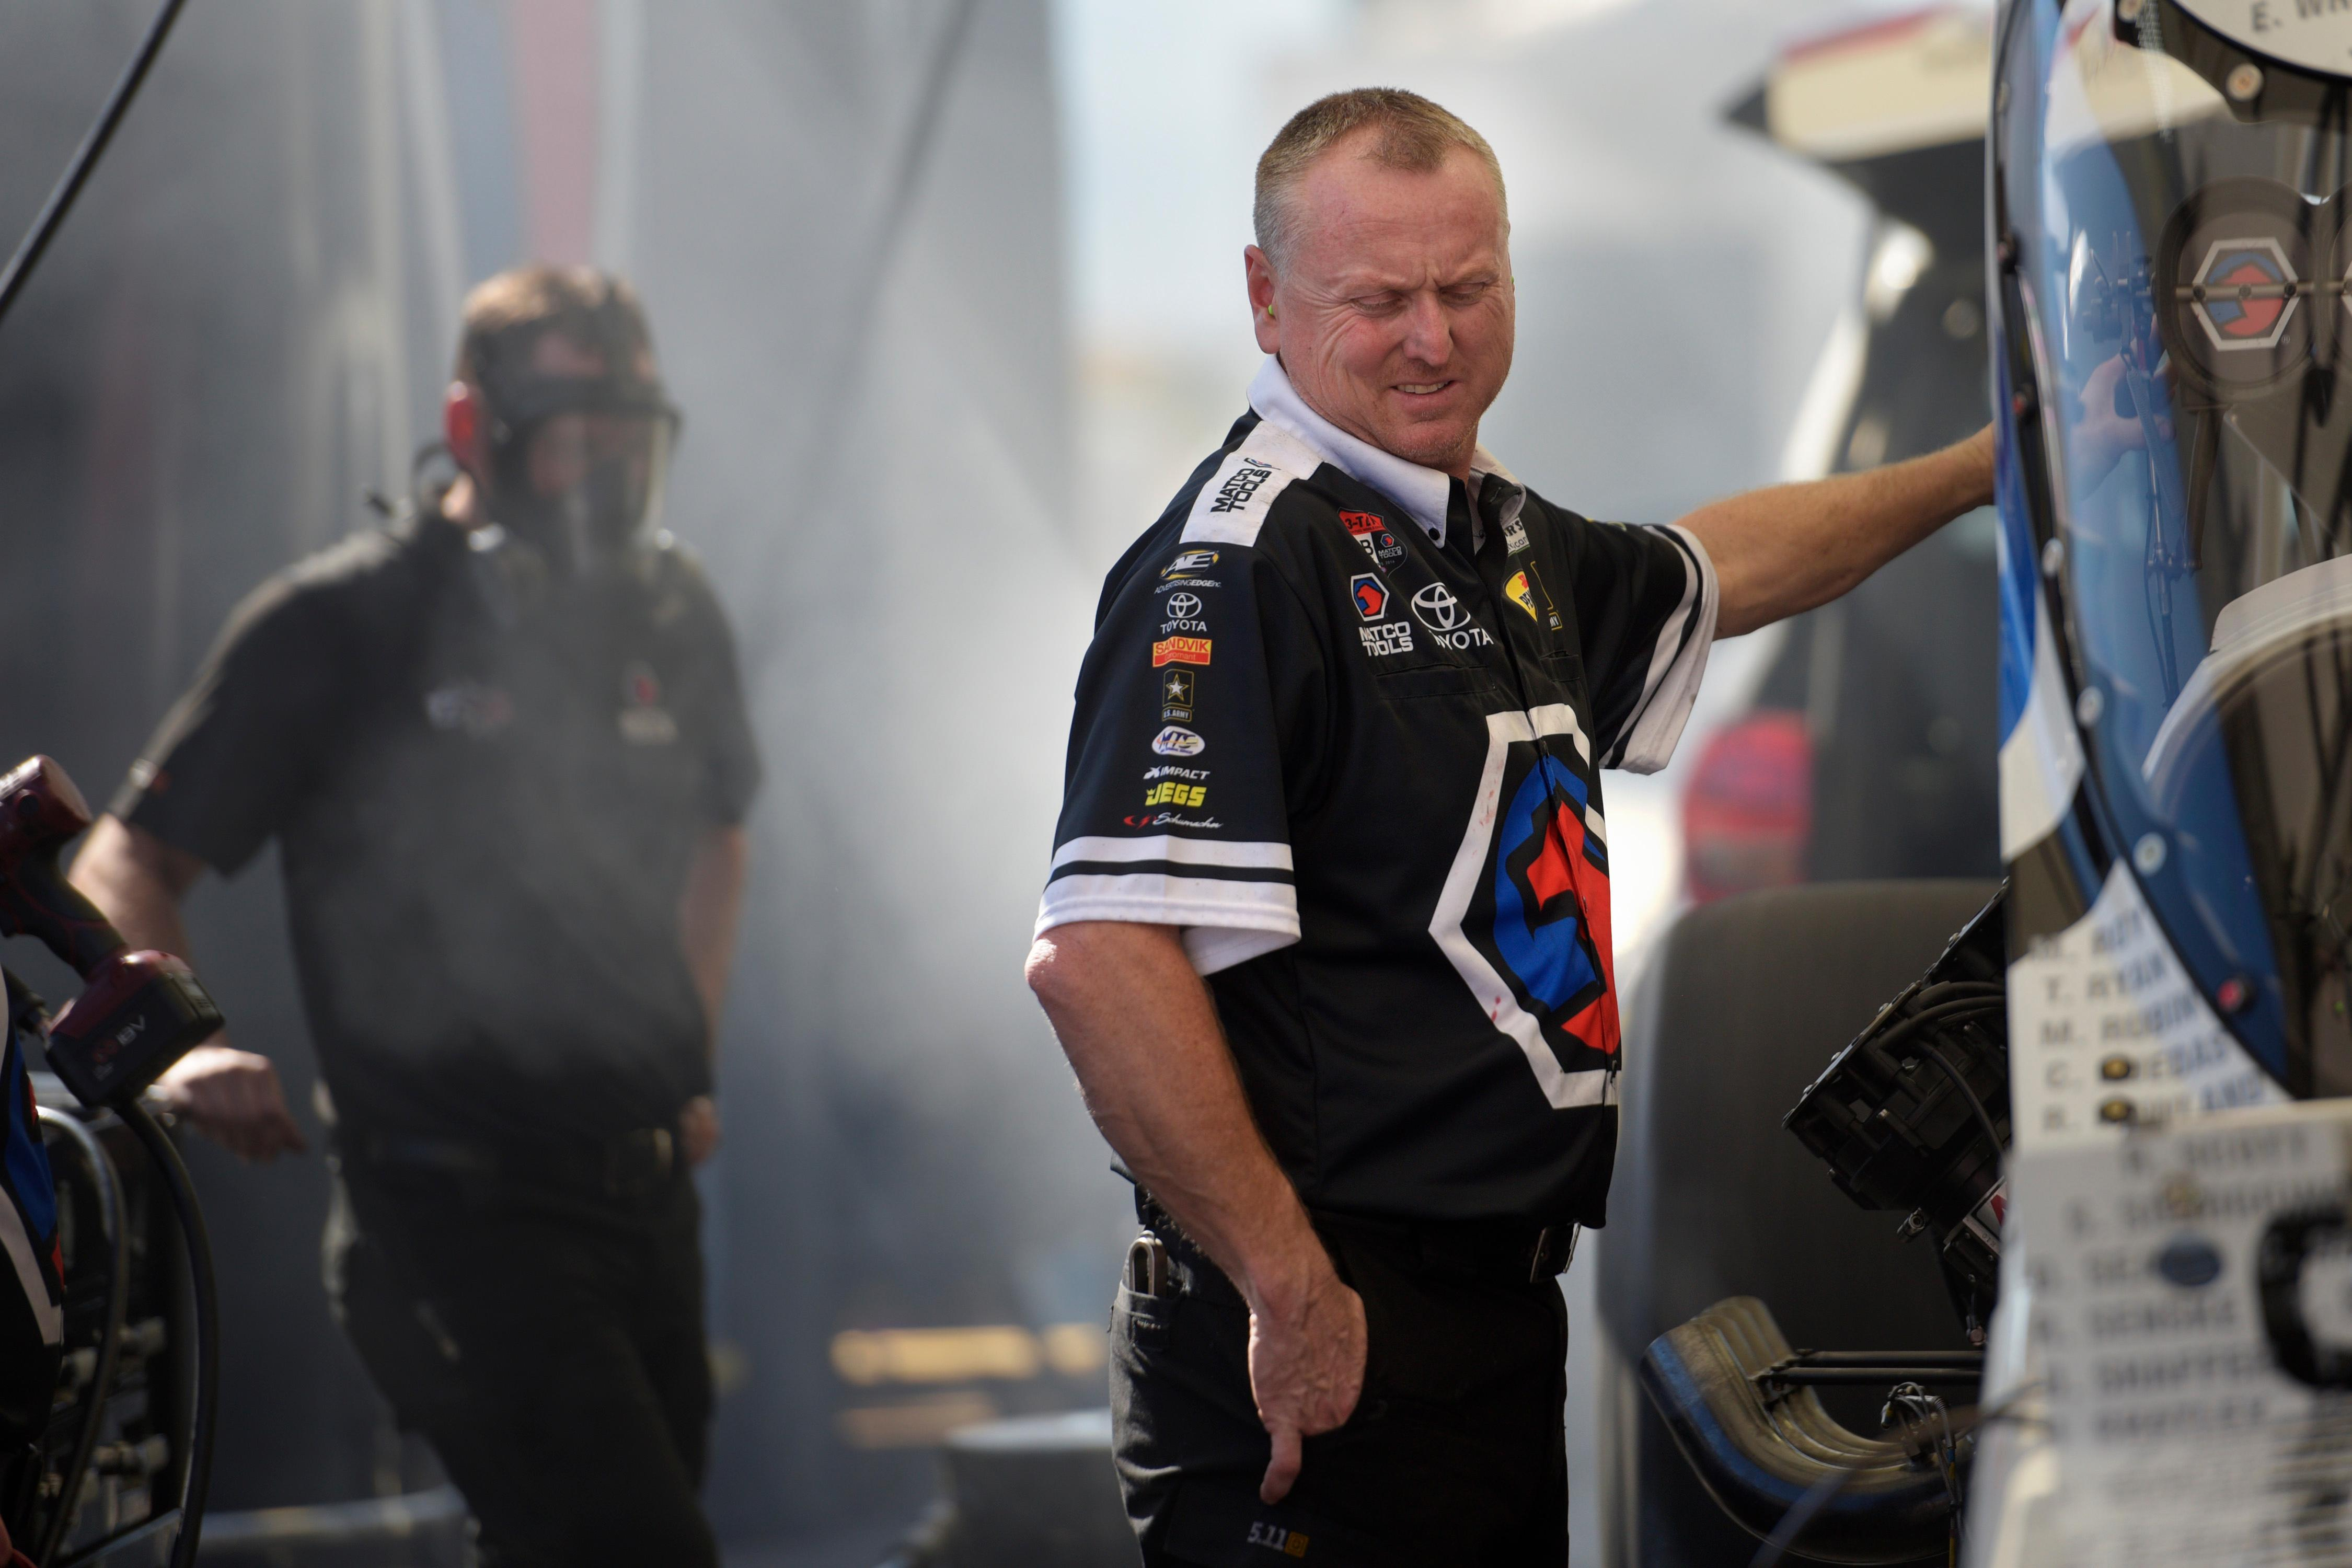 One of Top Fuel driver Antron Brown's crew members winces from nitro fumes while testing the car between runs during the NHRA DENSO Spark Plug Nationals at The Strip at the Las Vegas Motor Speedway Sunday, April 2, 2017. (Sam Morris/Las Vegas News Bureau)